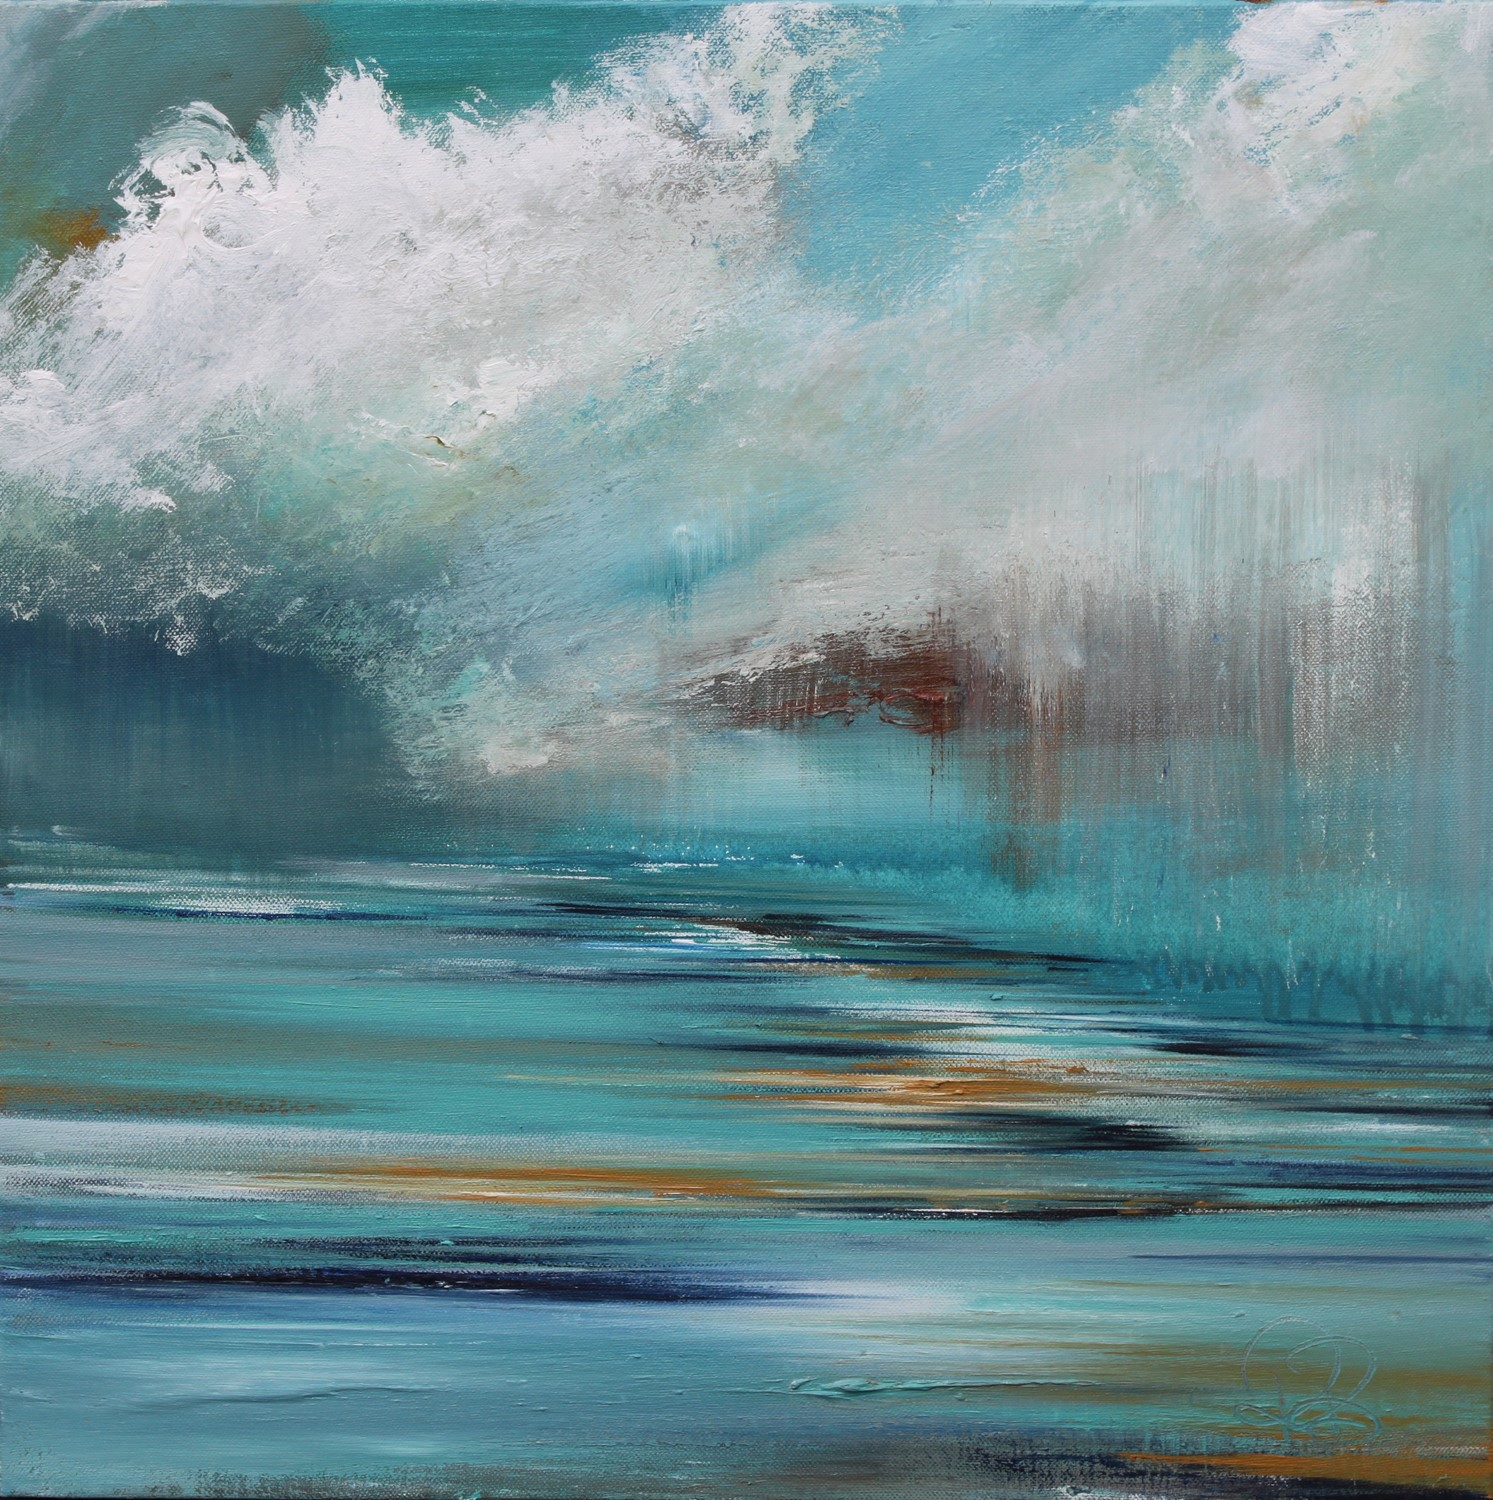 'Down Pour Heading' by artist Rosanne Barr